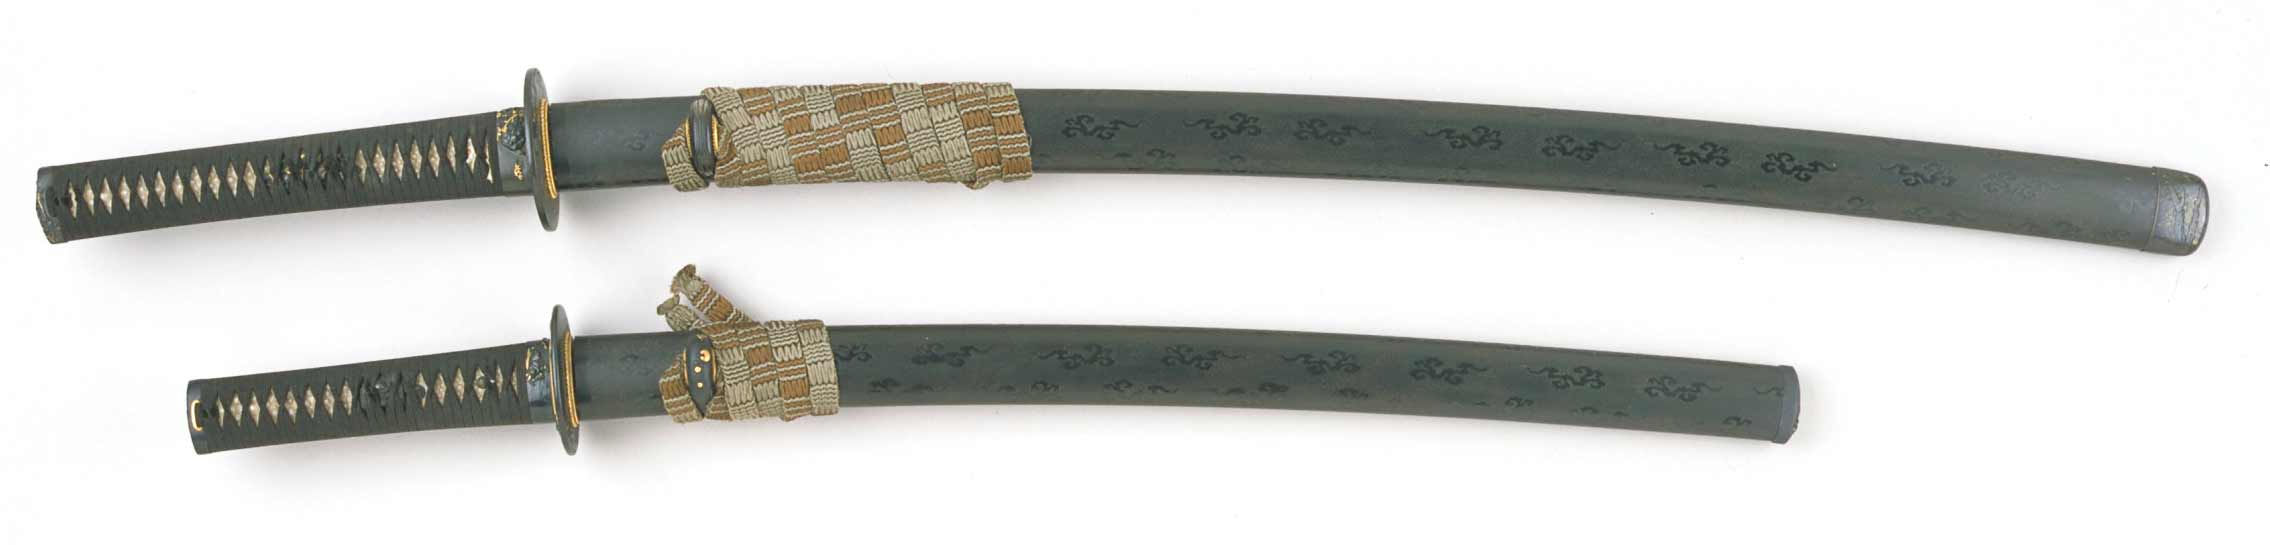 Photograph of a Japanese long and short sword